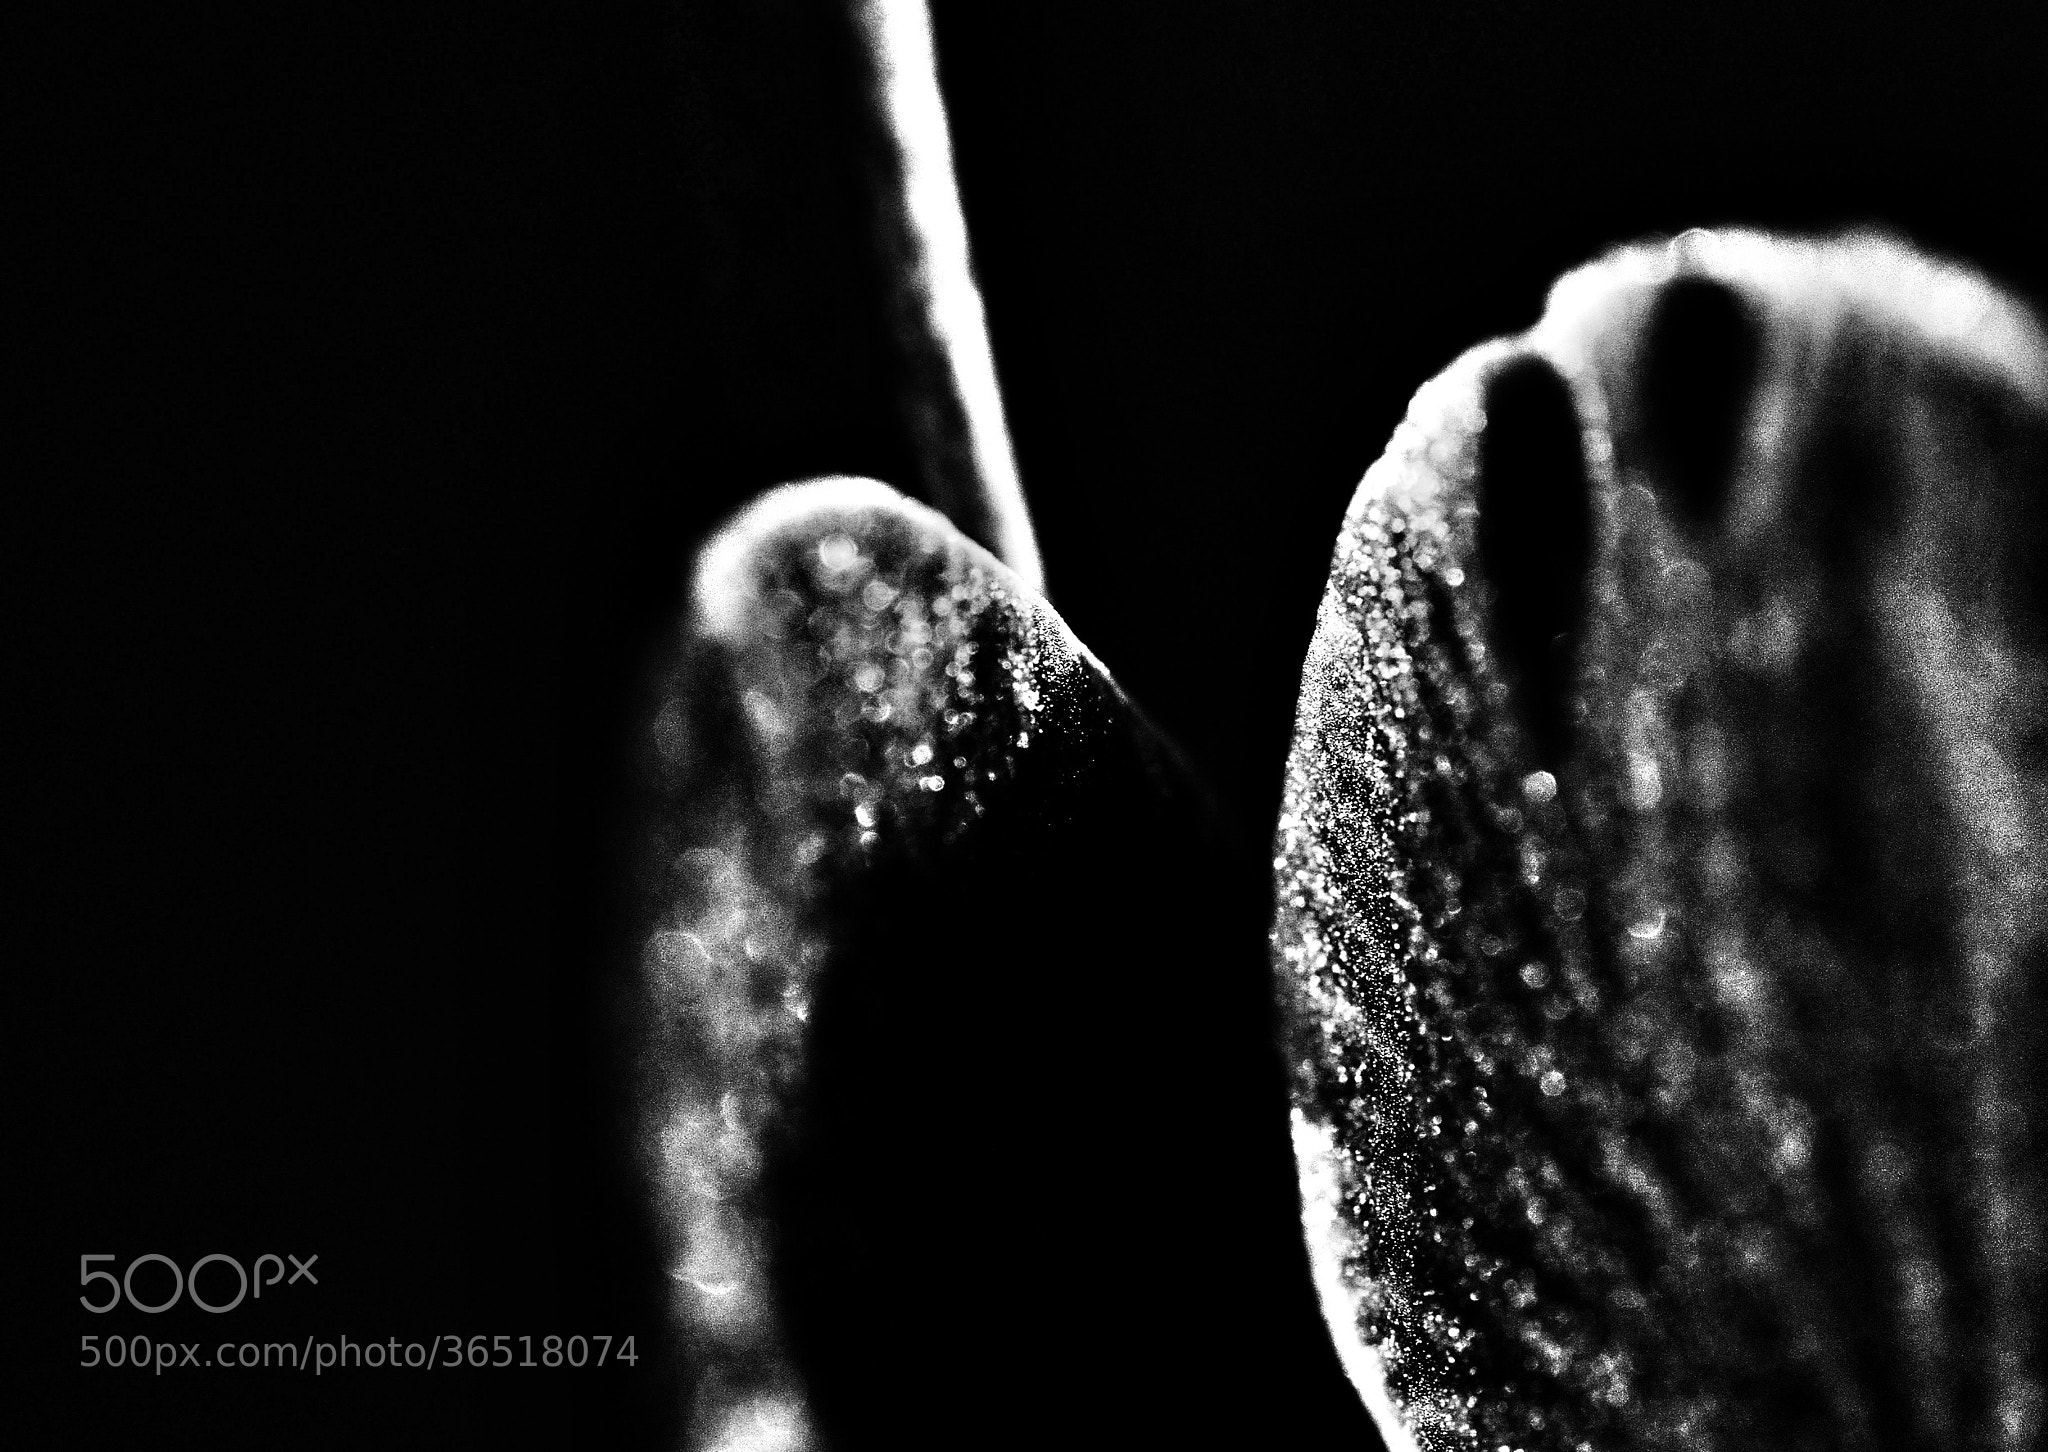 Photograph Monochrome ochridee detail by live impression on 500px